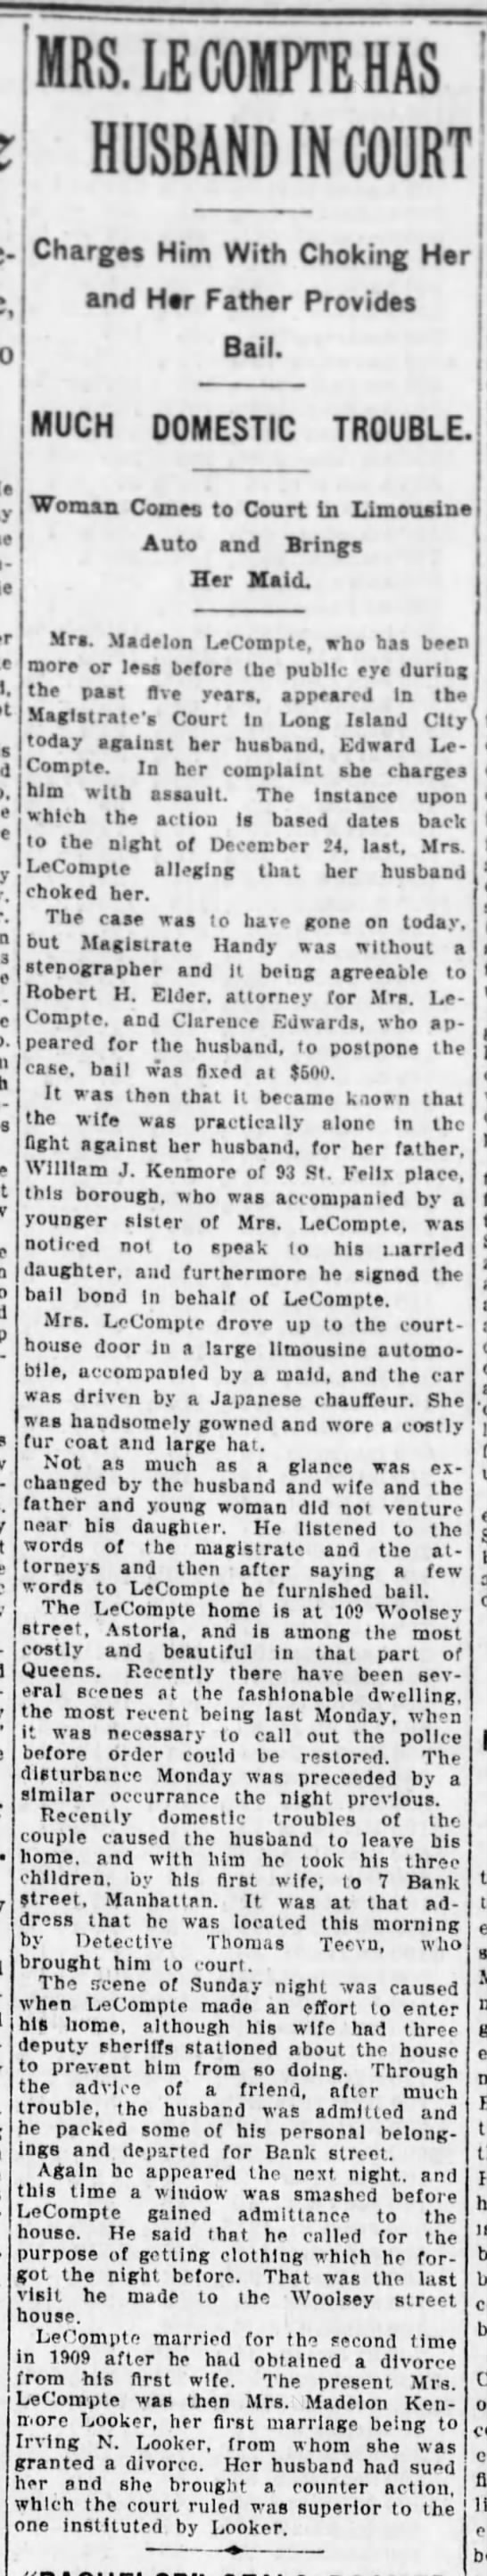 Brooklyn Daily EAgle pg 16 8 Jan 1913 Mrs LeCompte has husband in Court -